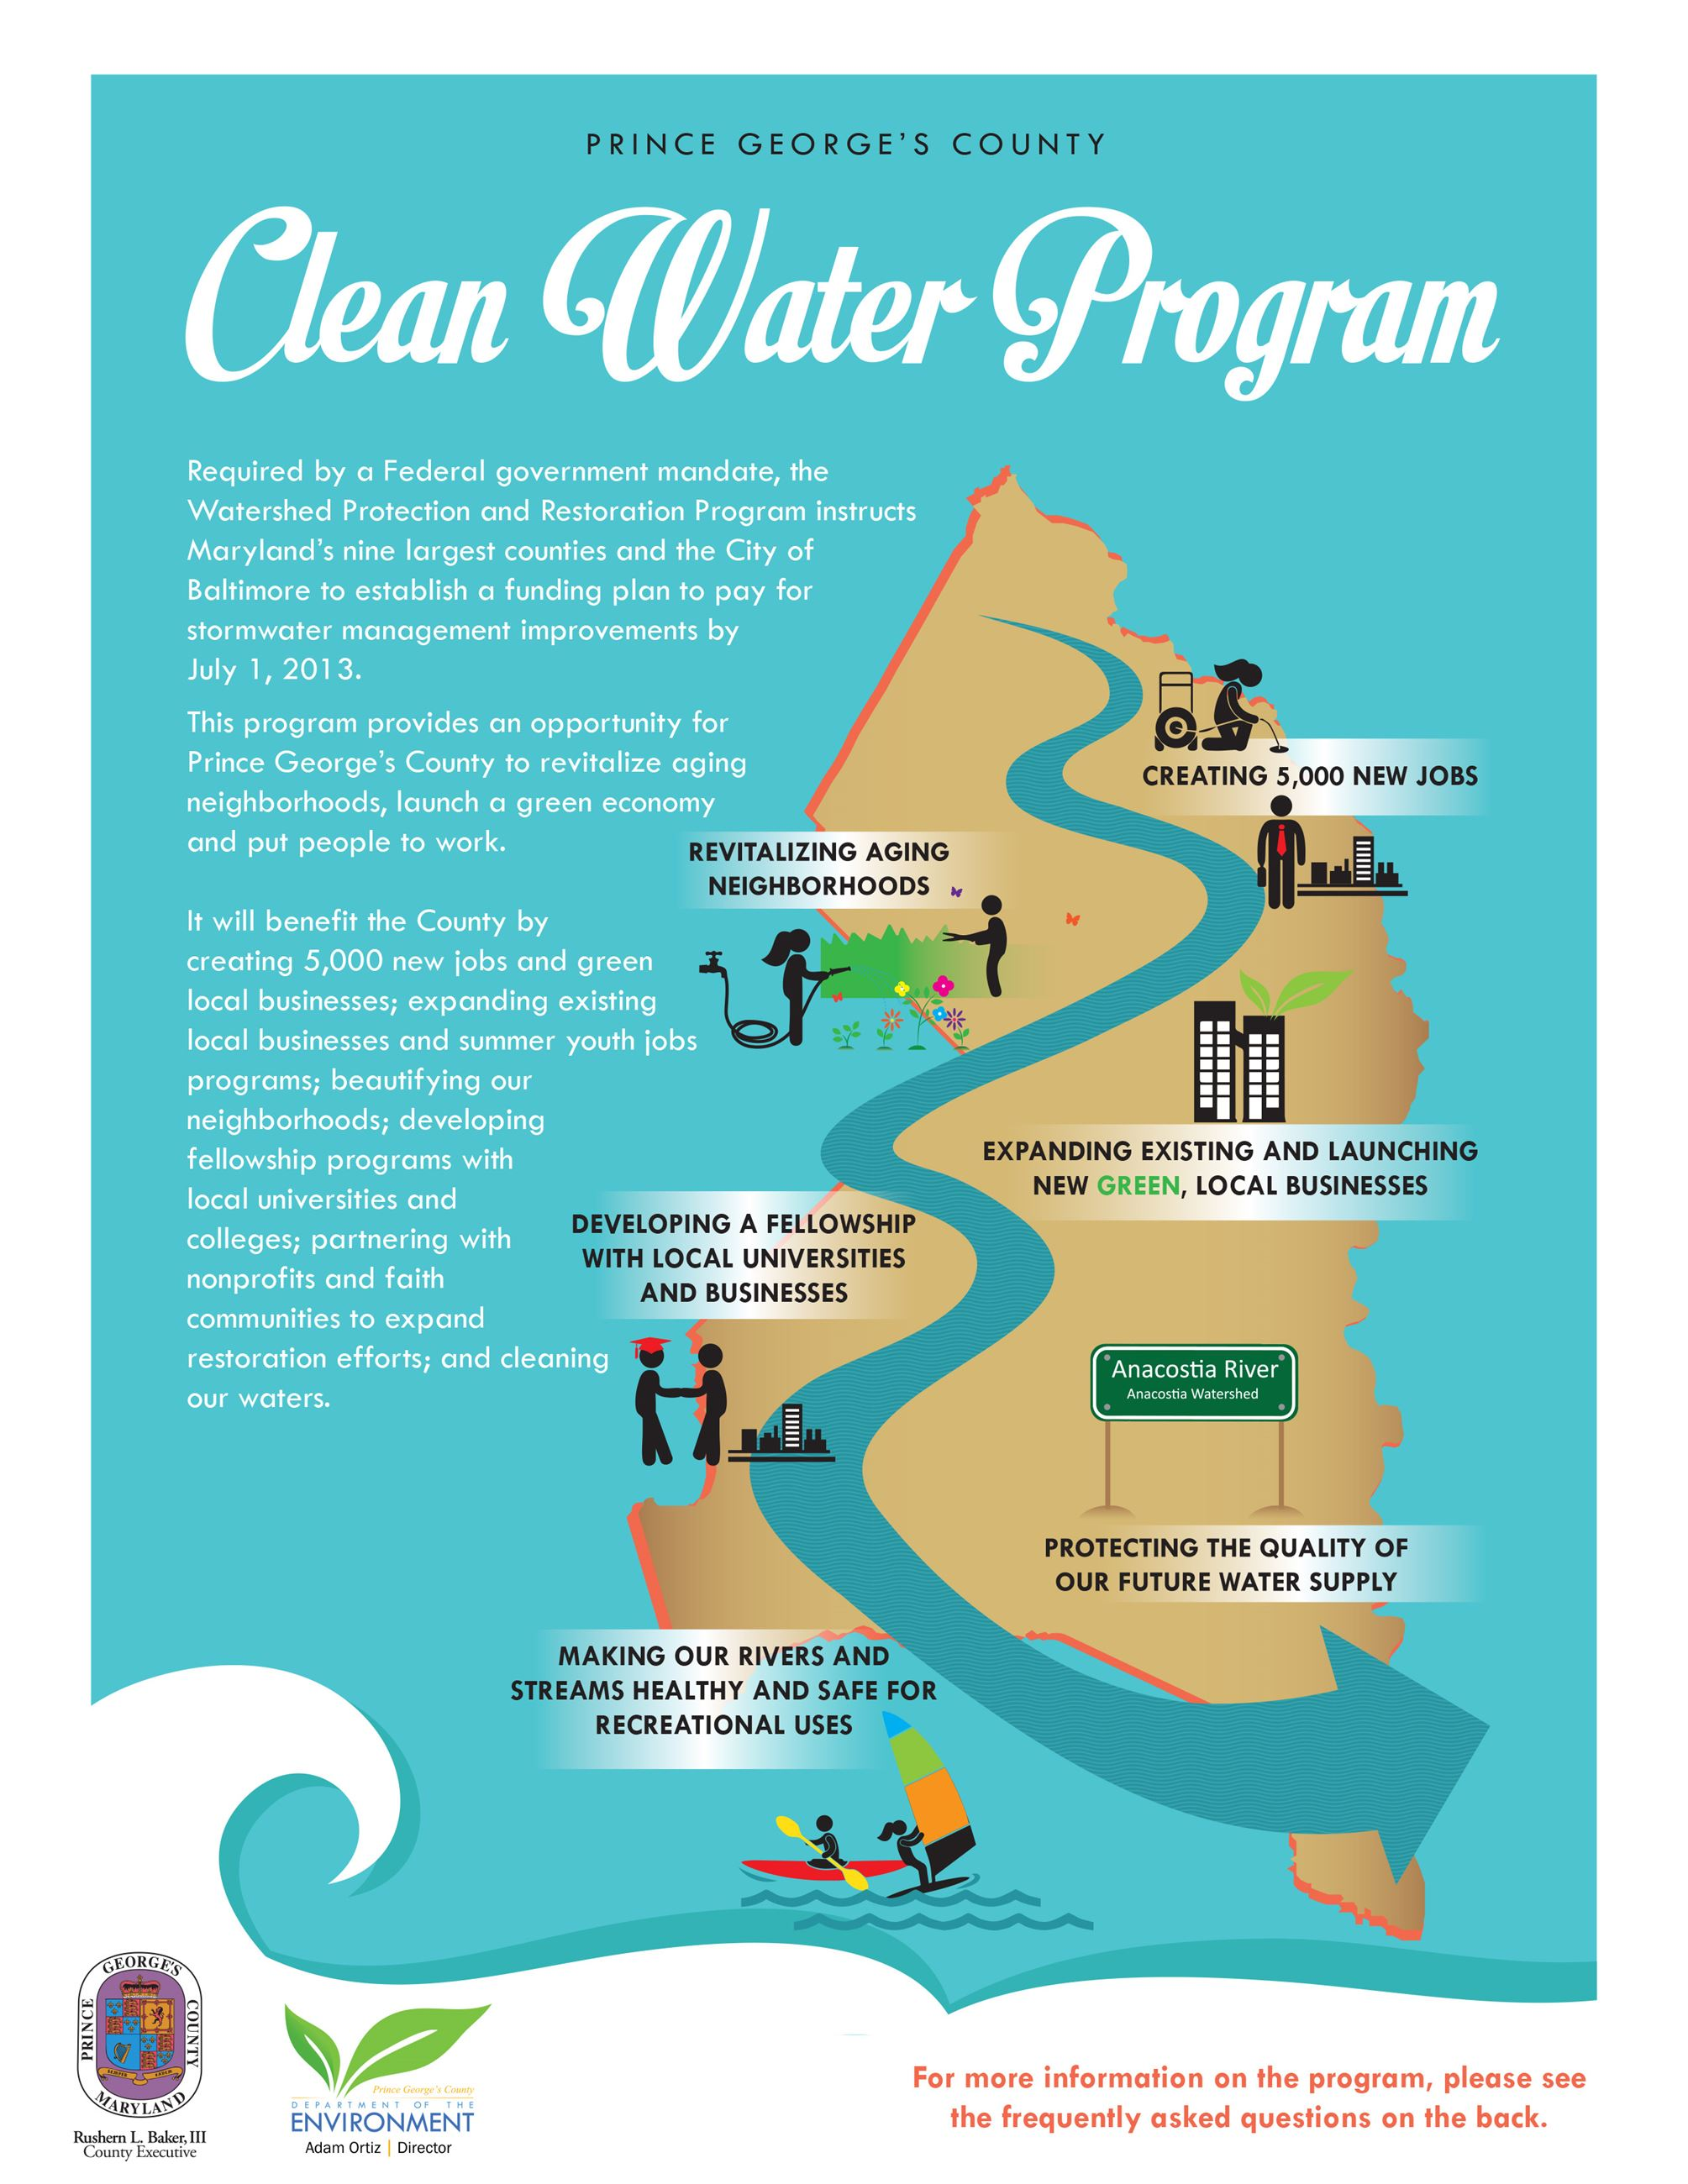 Clean Water Program Information